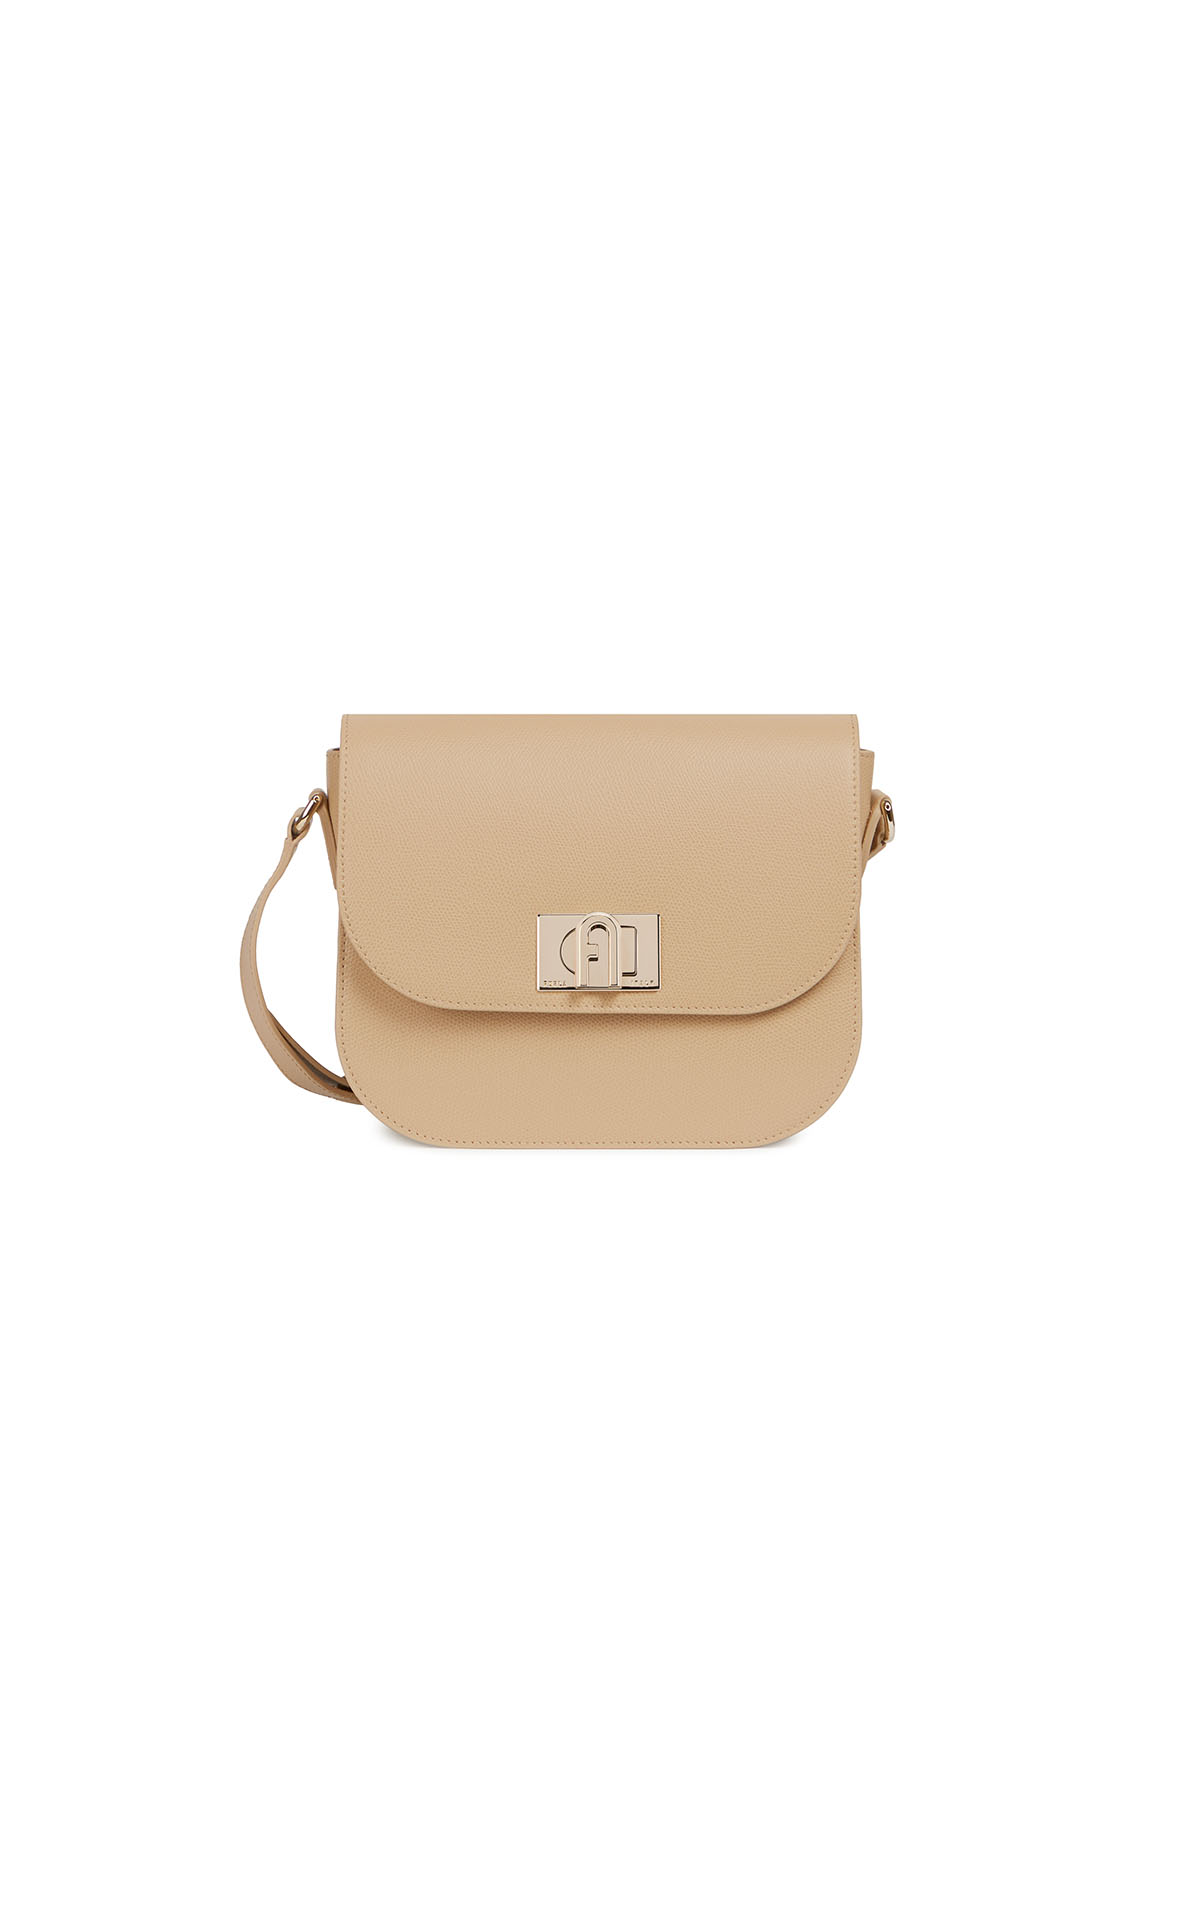 Furla 1927 s shoulder bag at the bicester village shopping collection